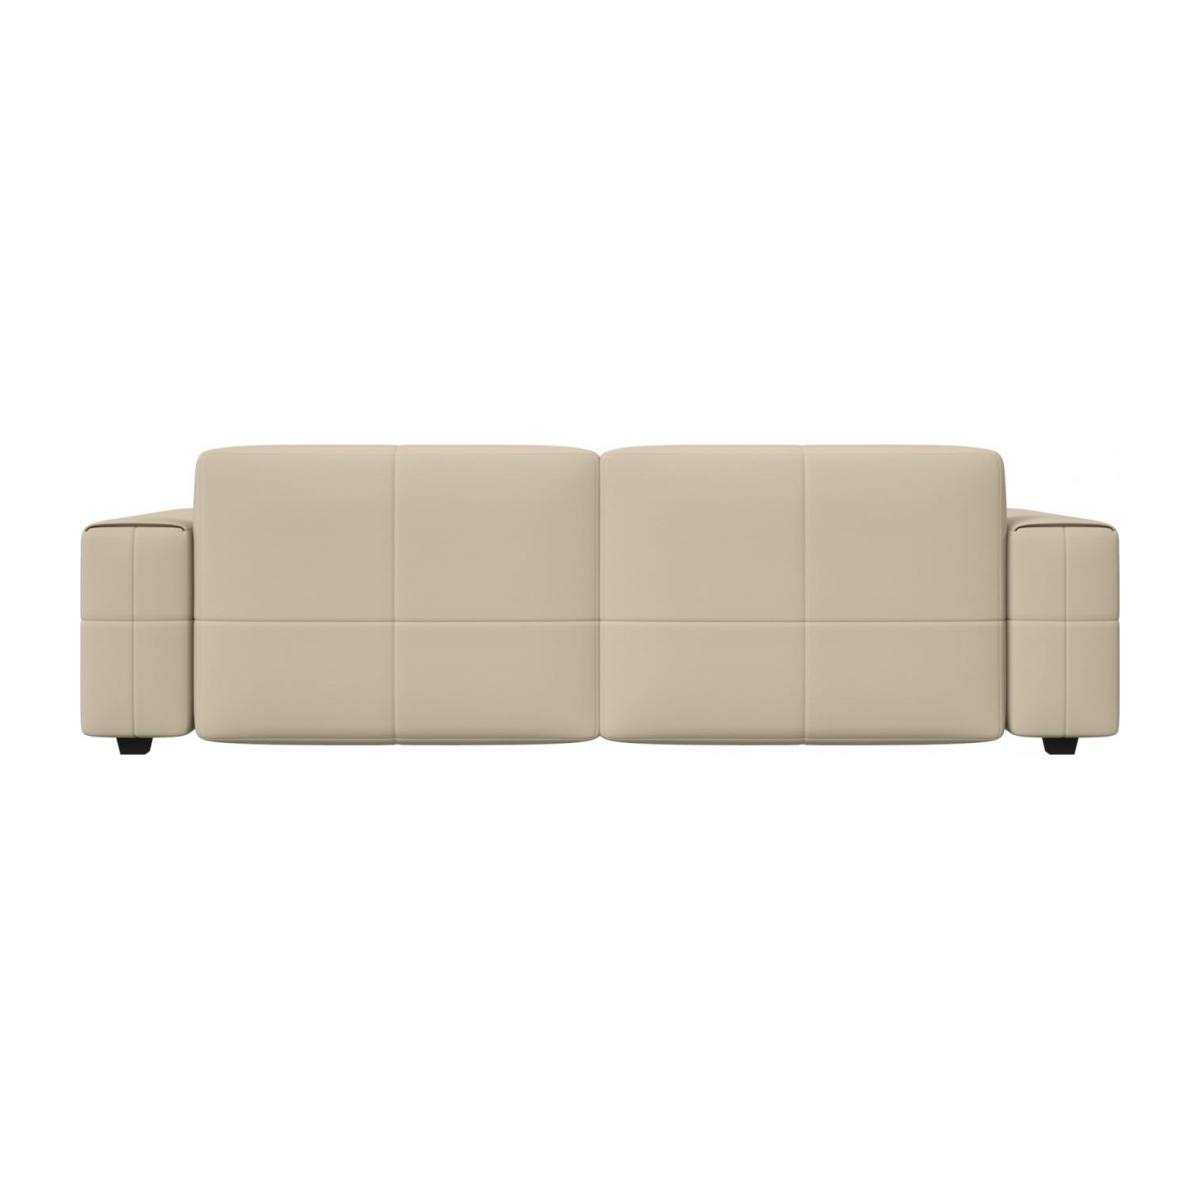 4 seater sofa in Savoy semi-aniline leather, off white n°3